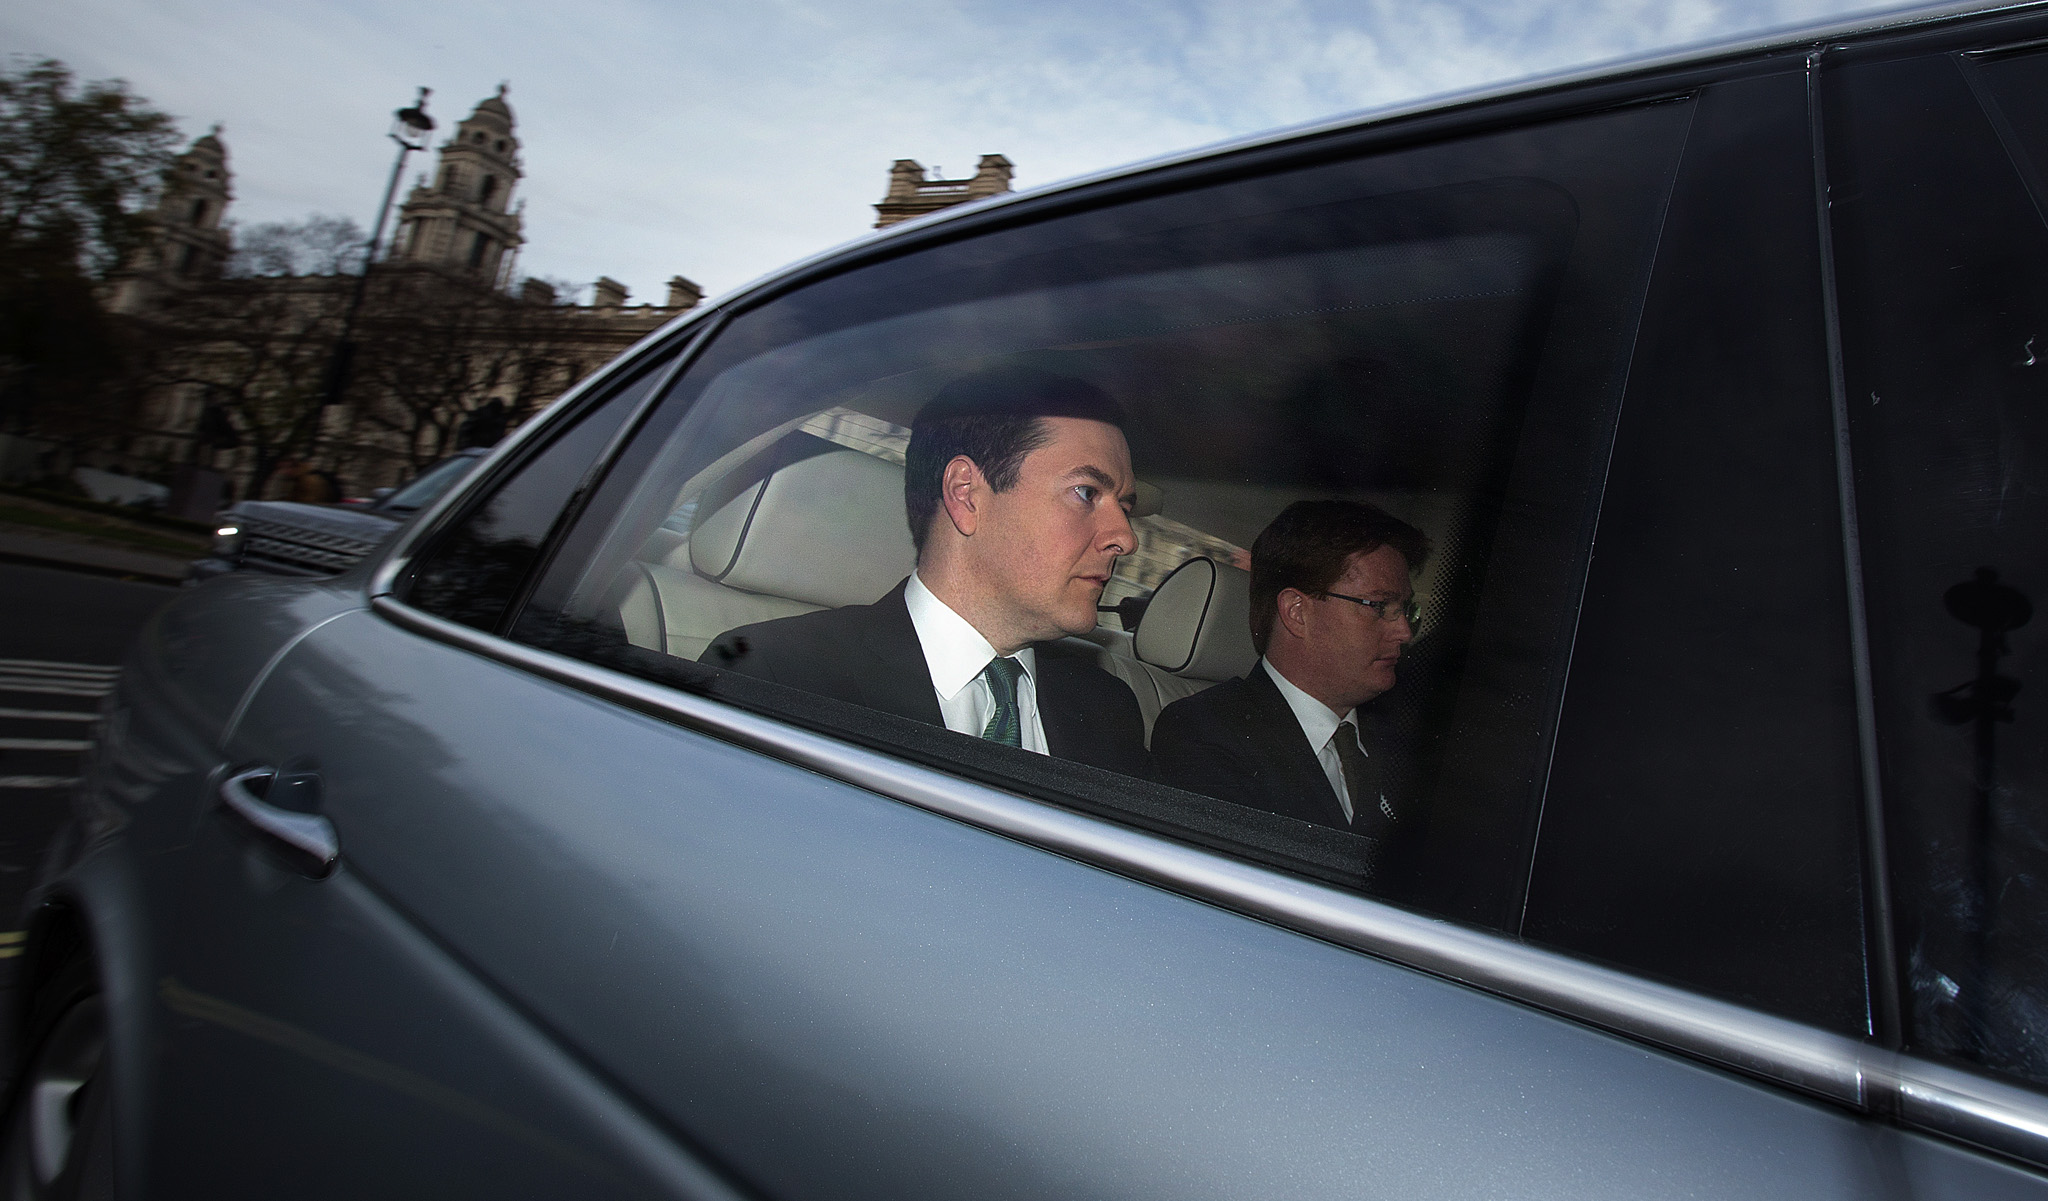 Chancellor of the Exchequer, George Osborne and Chief Secretary to the Treasury, Danny Alexander make their way to the commons to deliver their autumn statement.